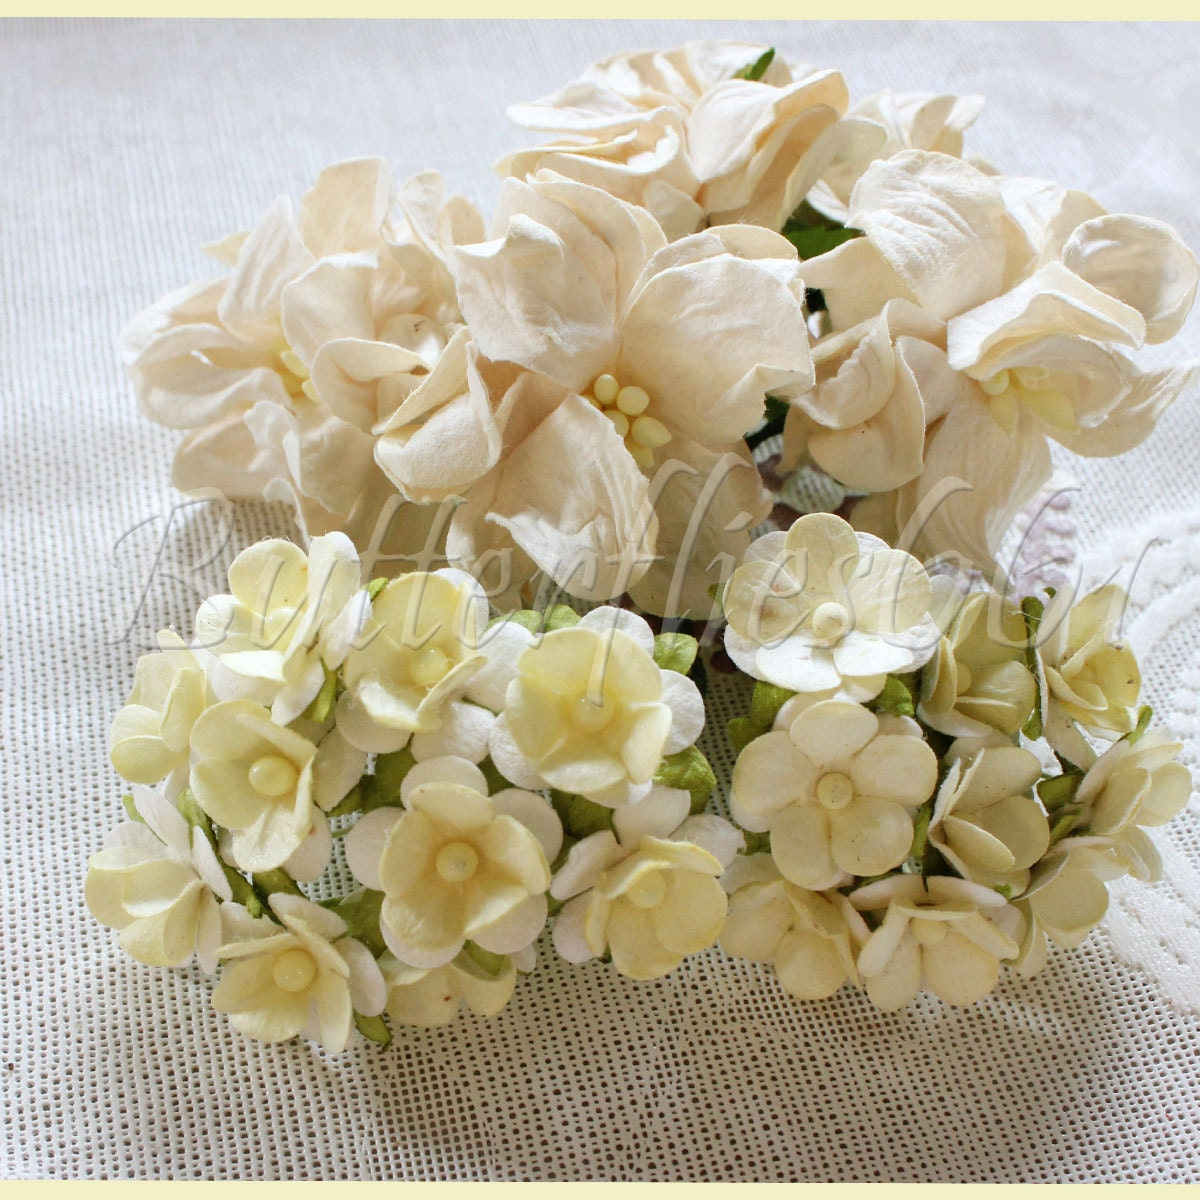 25 Handmade Mulberry Paper Flowers Mixed Sizes of  Ivory Tone Wedding Roses Code M153 - butterflies661